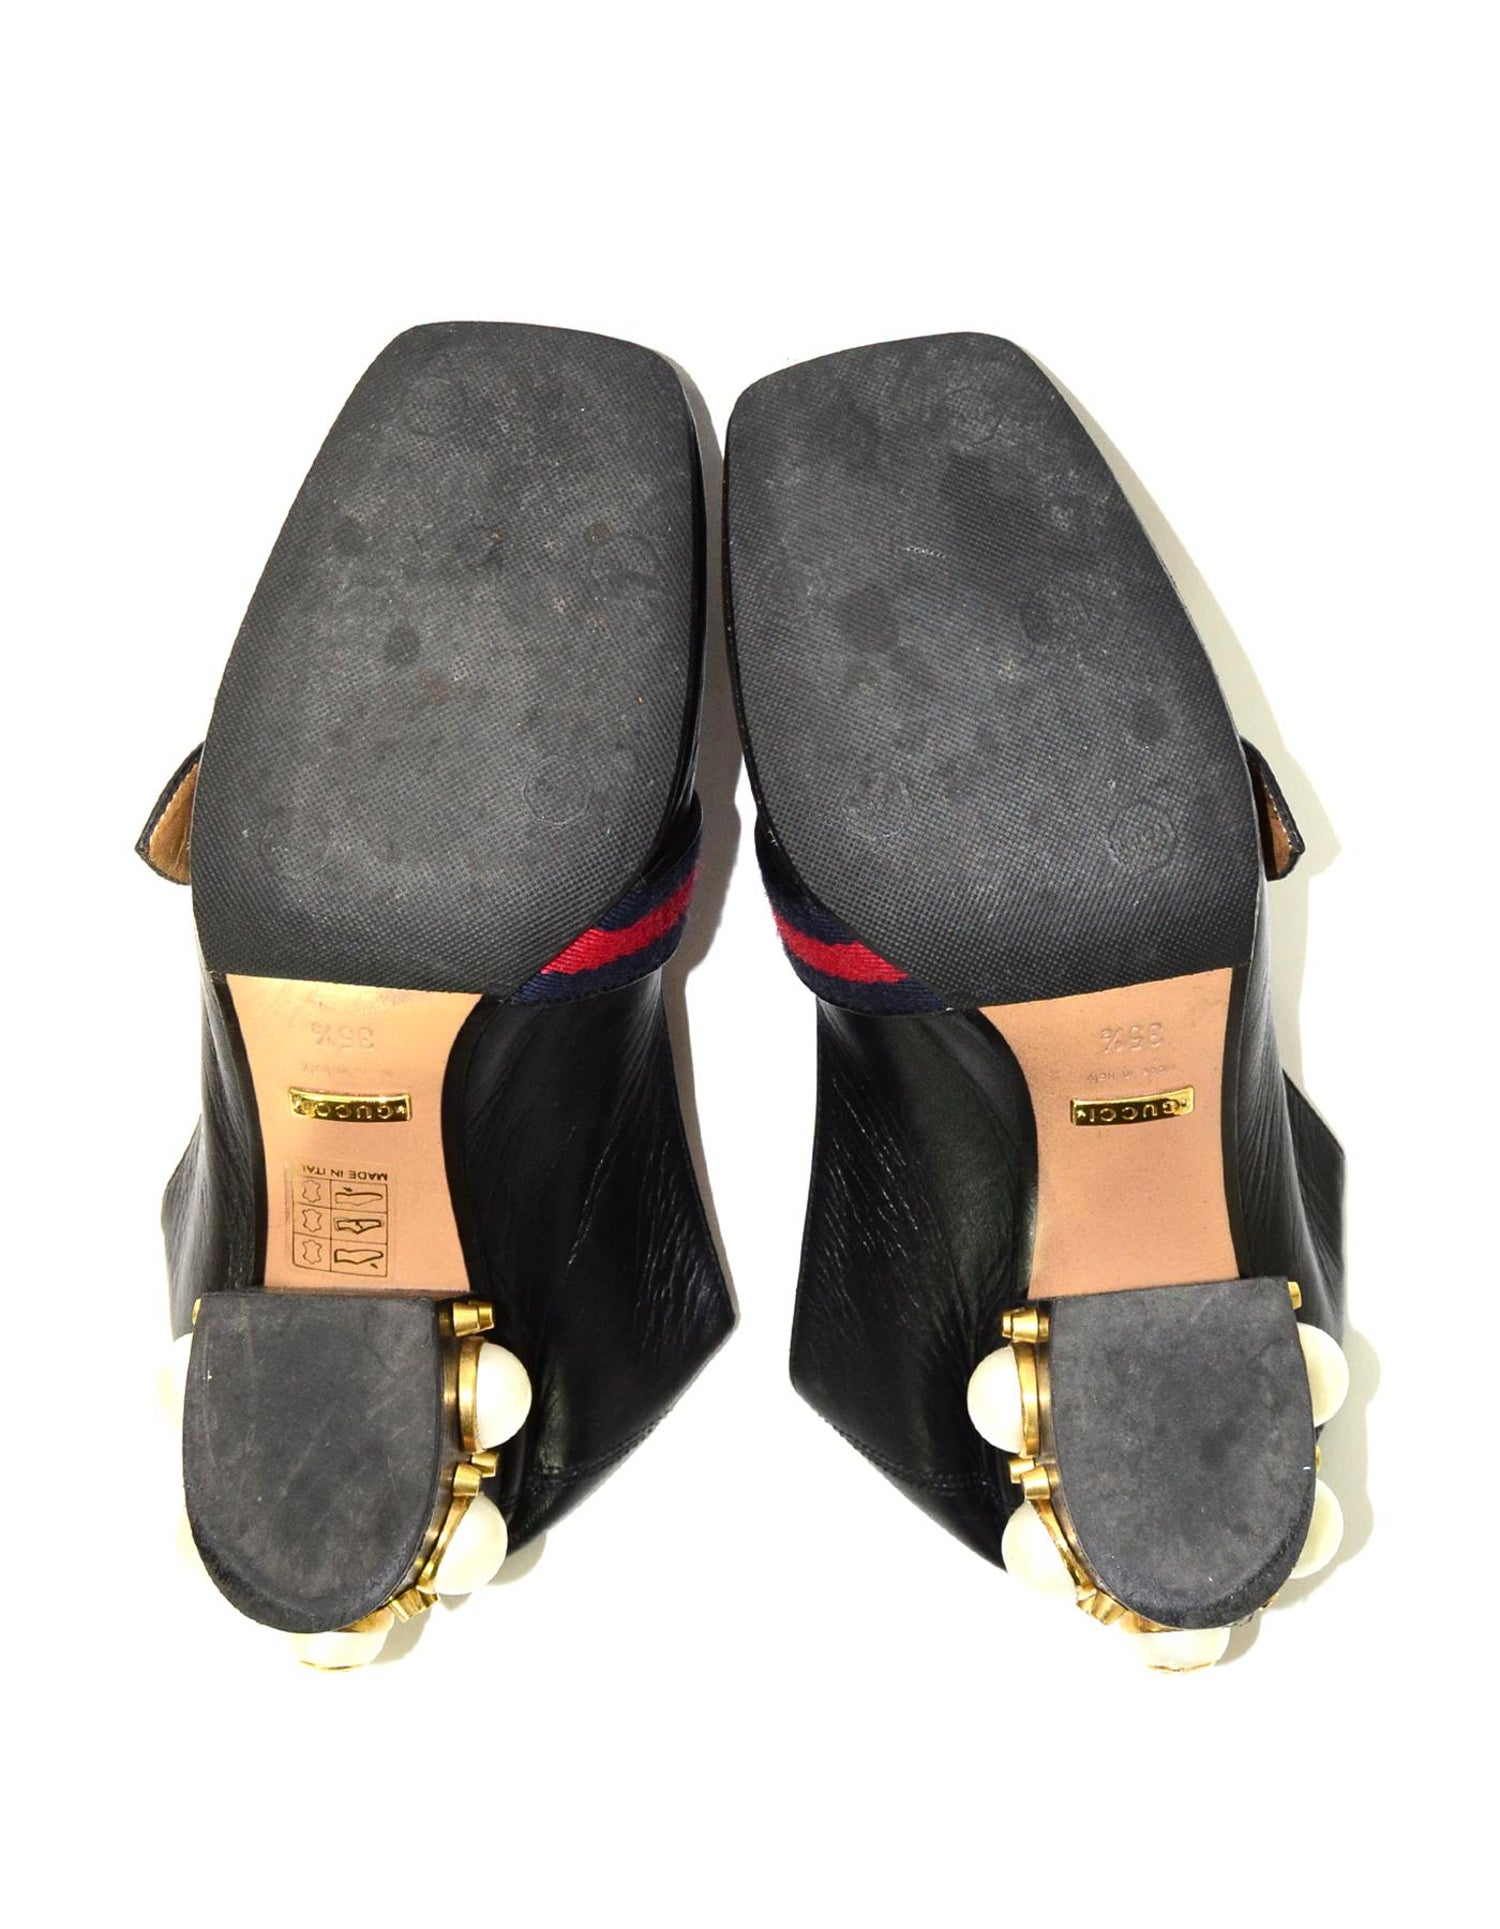 8ce2306ee44 Gucci Black Leather Collapsible Shoes W  Faux Pearl Heels Sz 35.5 For Sale  at 1stdibs